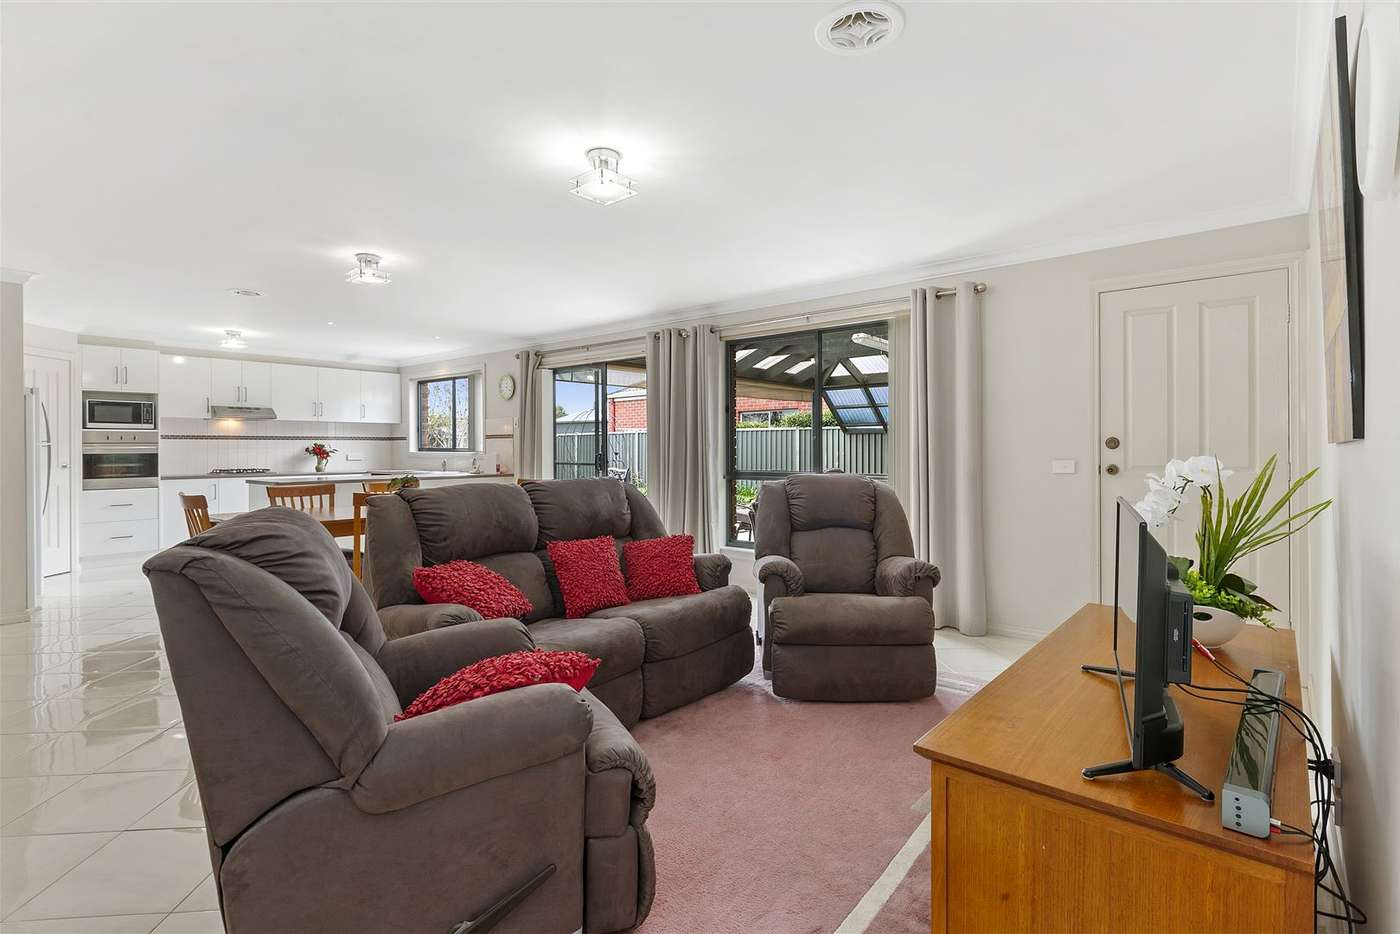 Fifth view of Homely house listing, 12 Nimble Drive, Delacombe VIC 3356